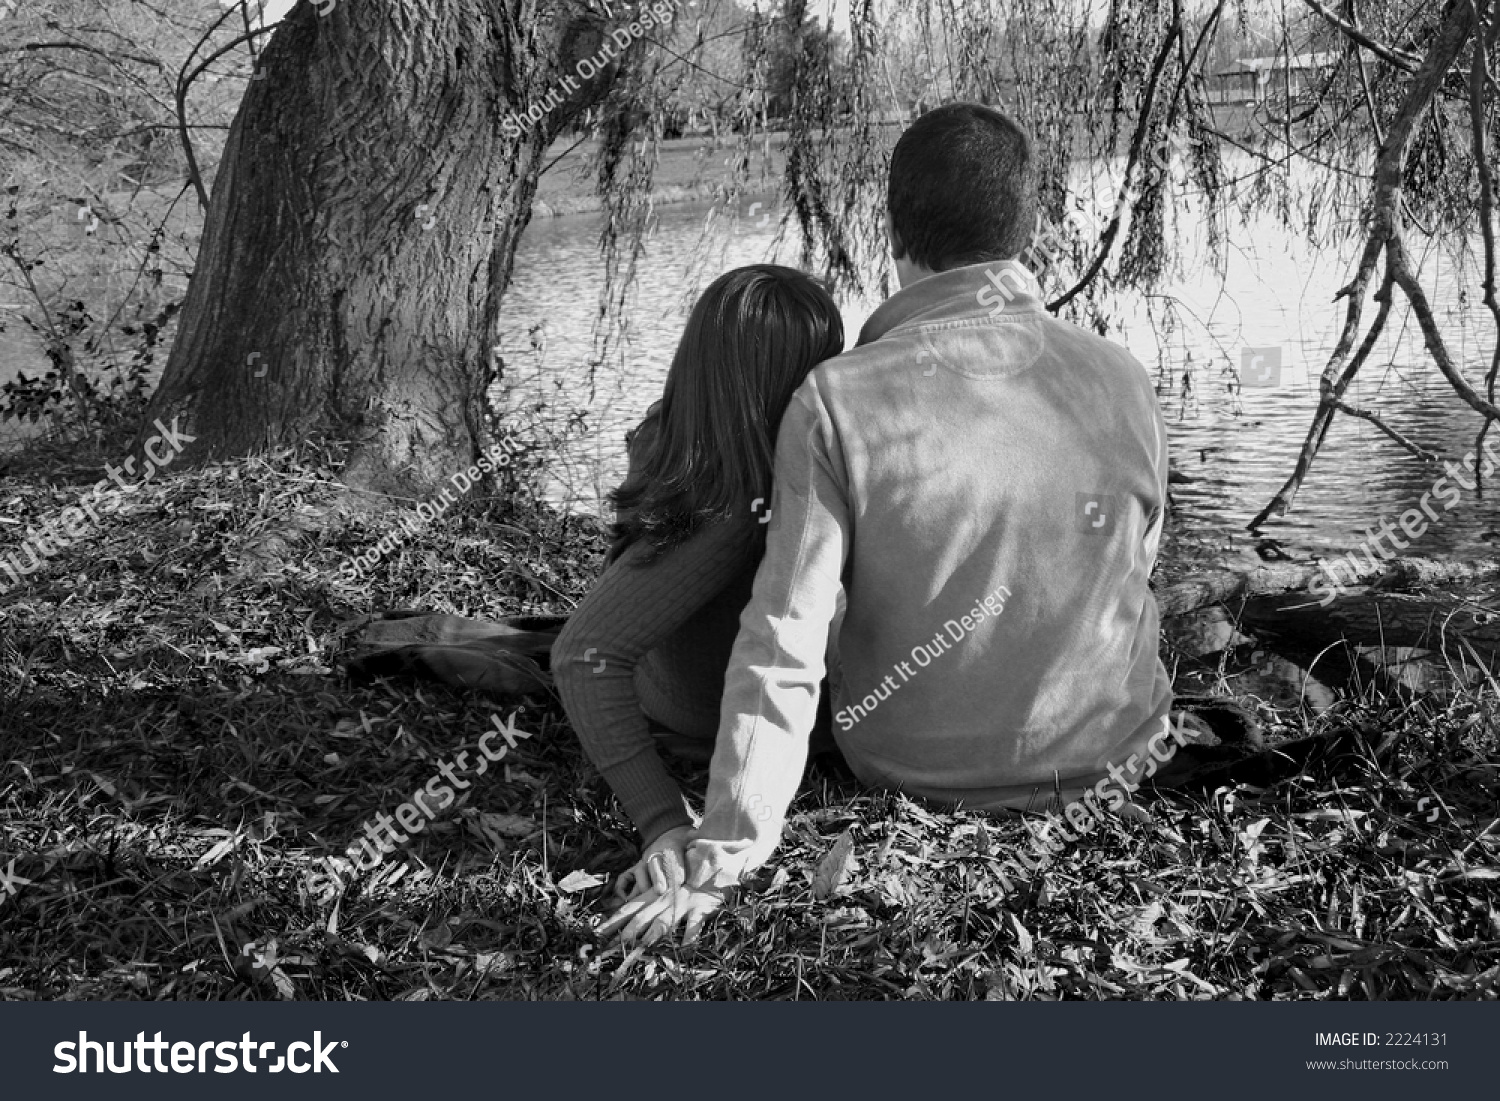 Image result for a couple sitting under tree